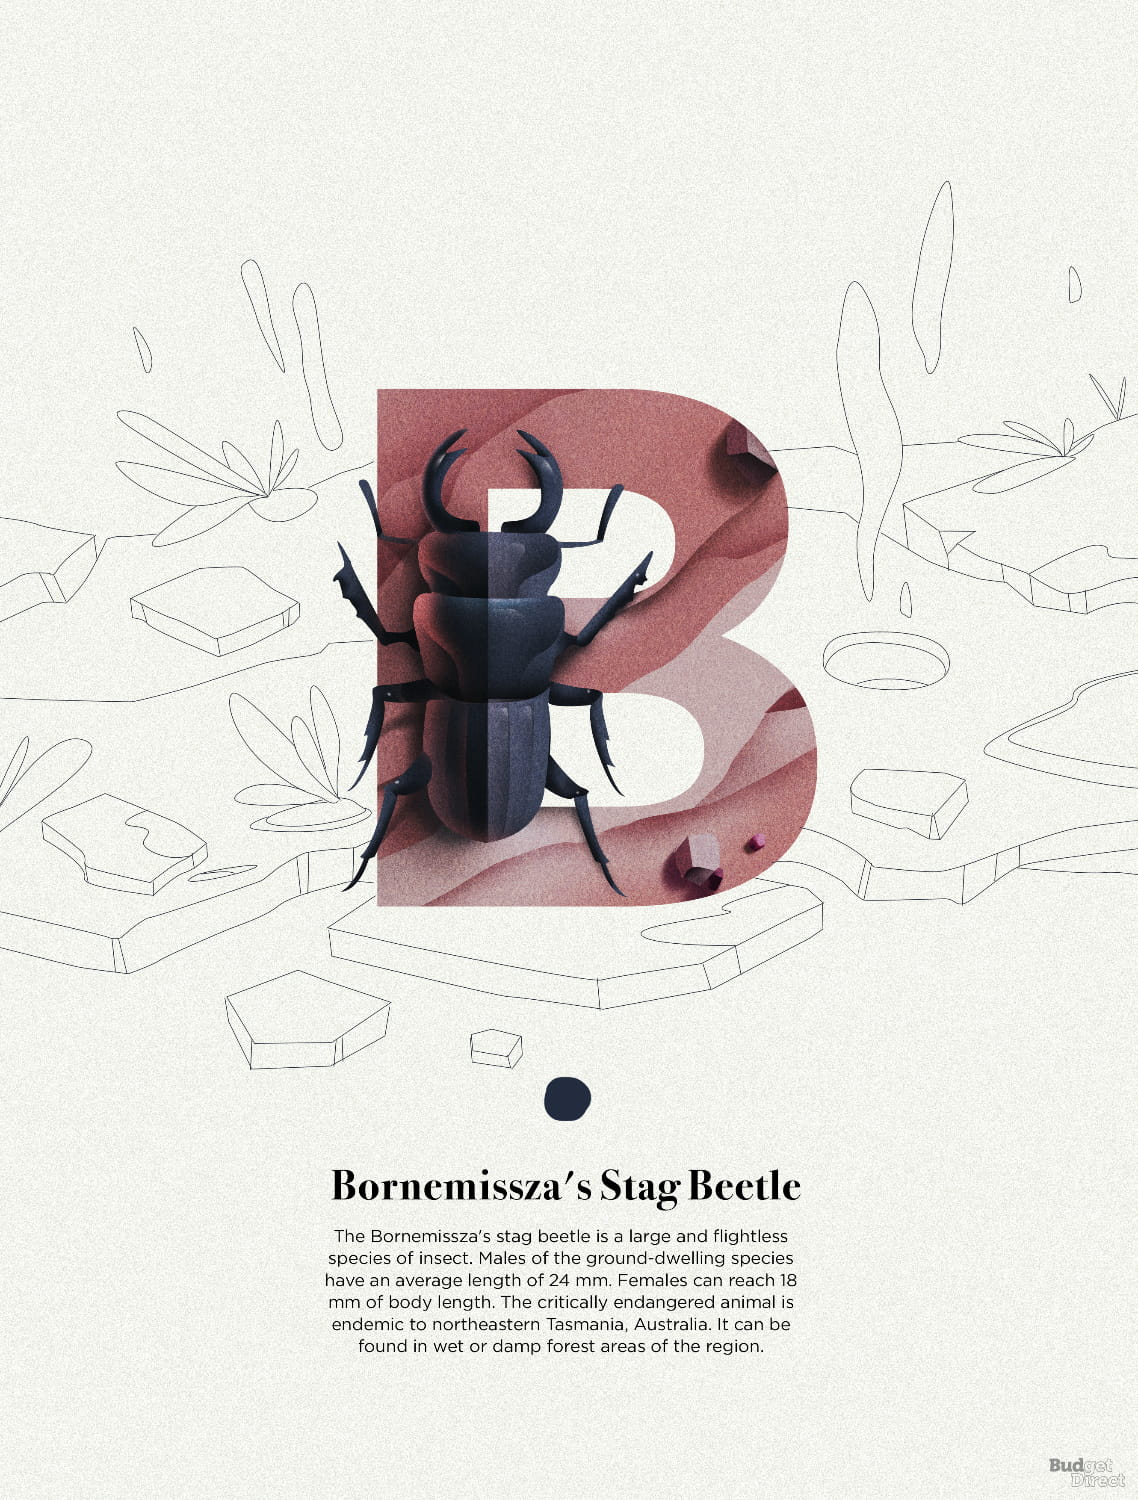 B is for Bornemisszas Stag Beetle